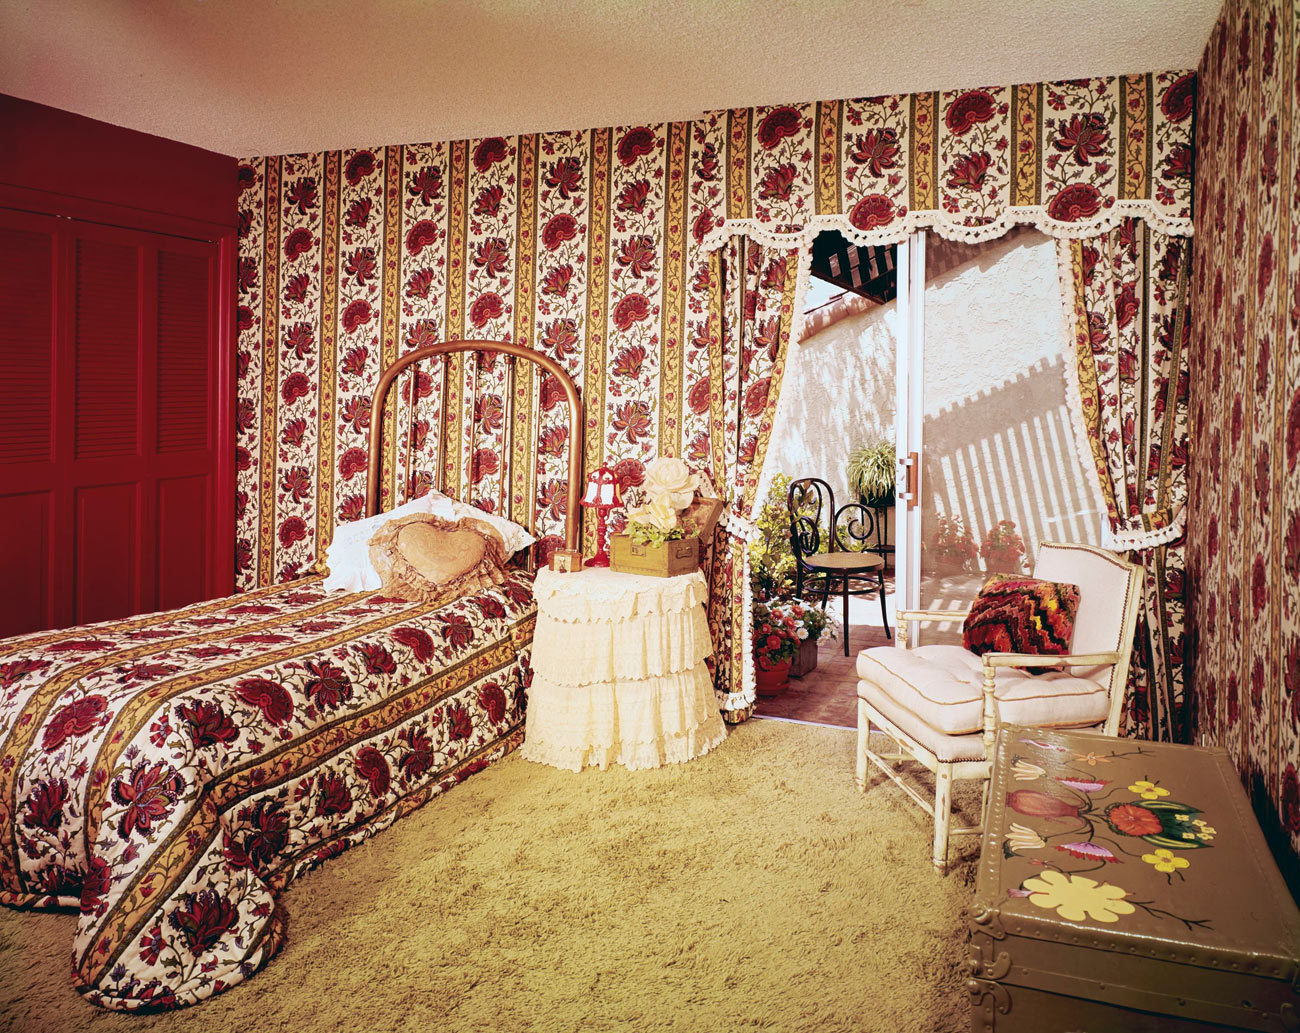 Bedroom with floral and stripe patterned wallpaper and matching bedspread on the twin bed.